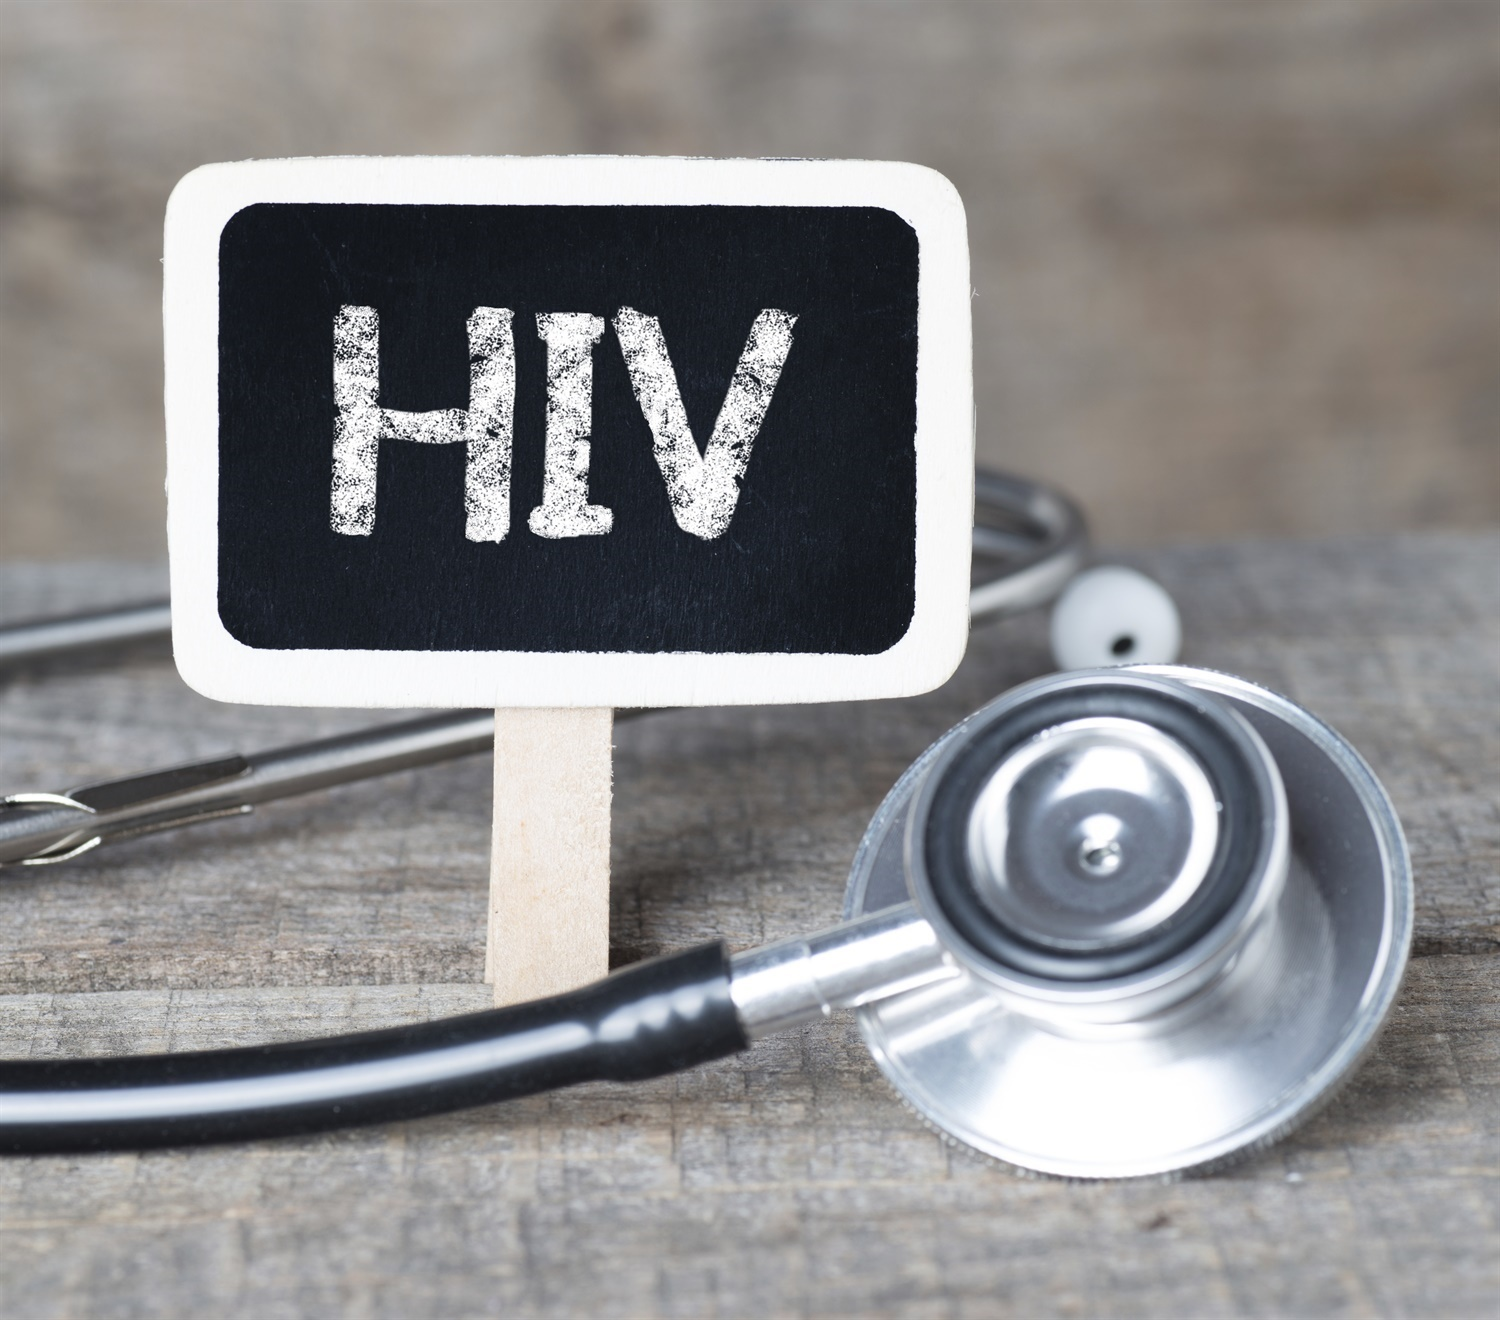 The pioneering HIV prevention drugPrEPwill be trialled by NHS England from September, it has been announced.